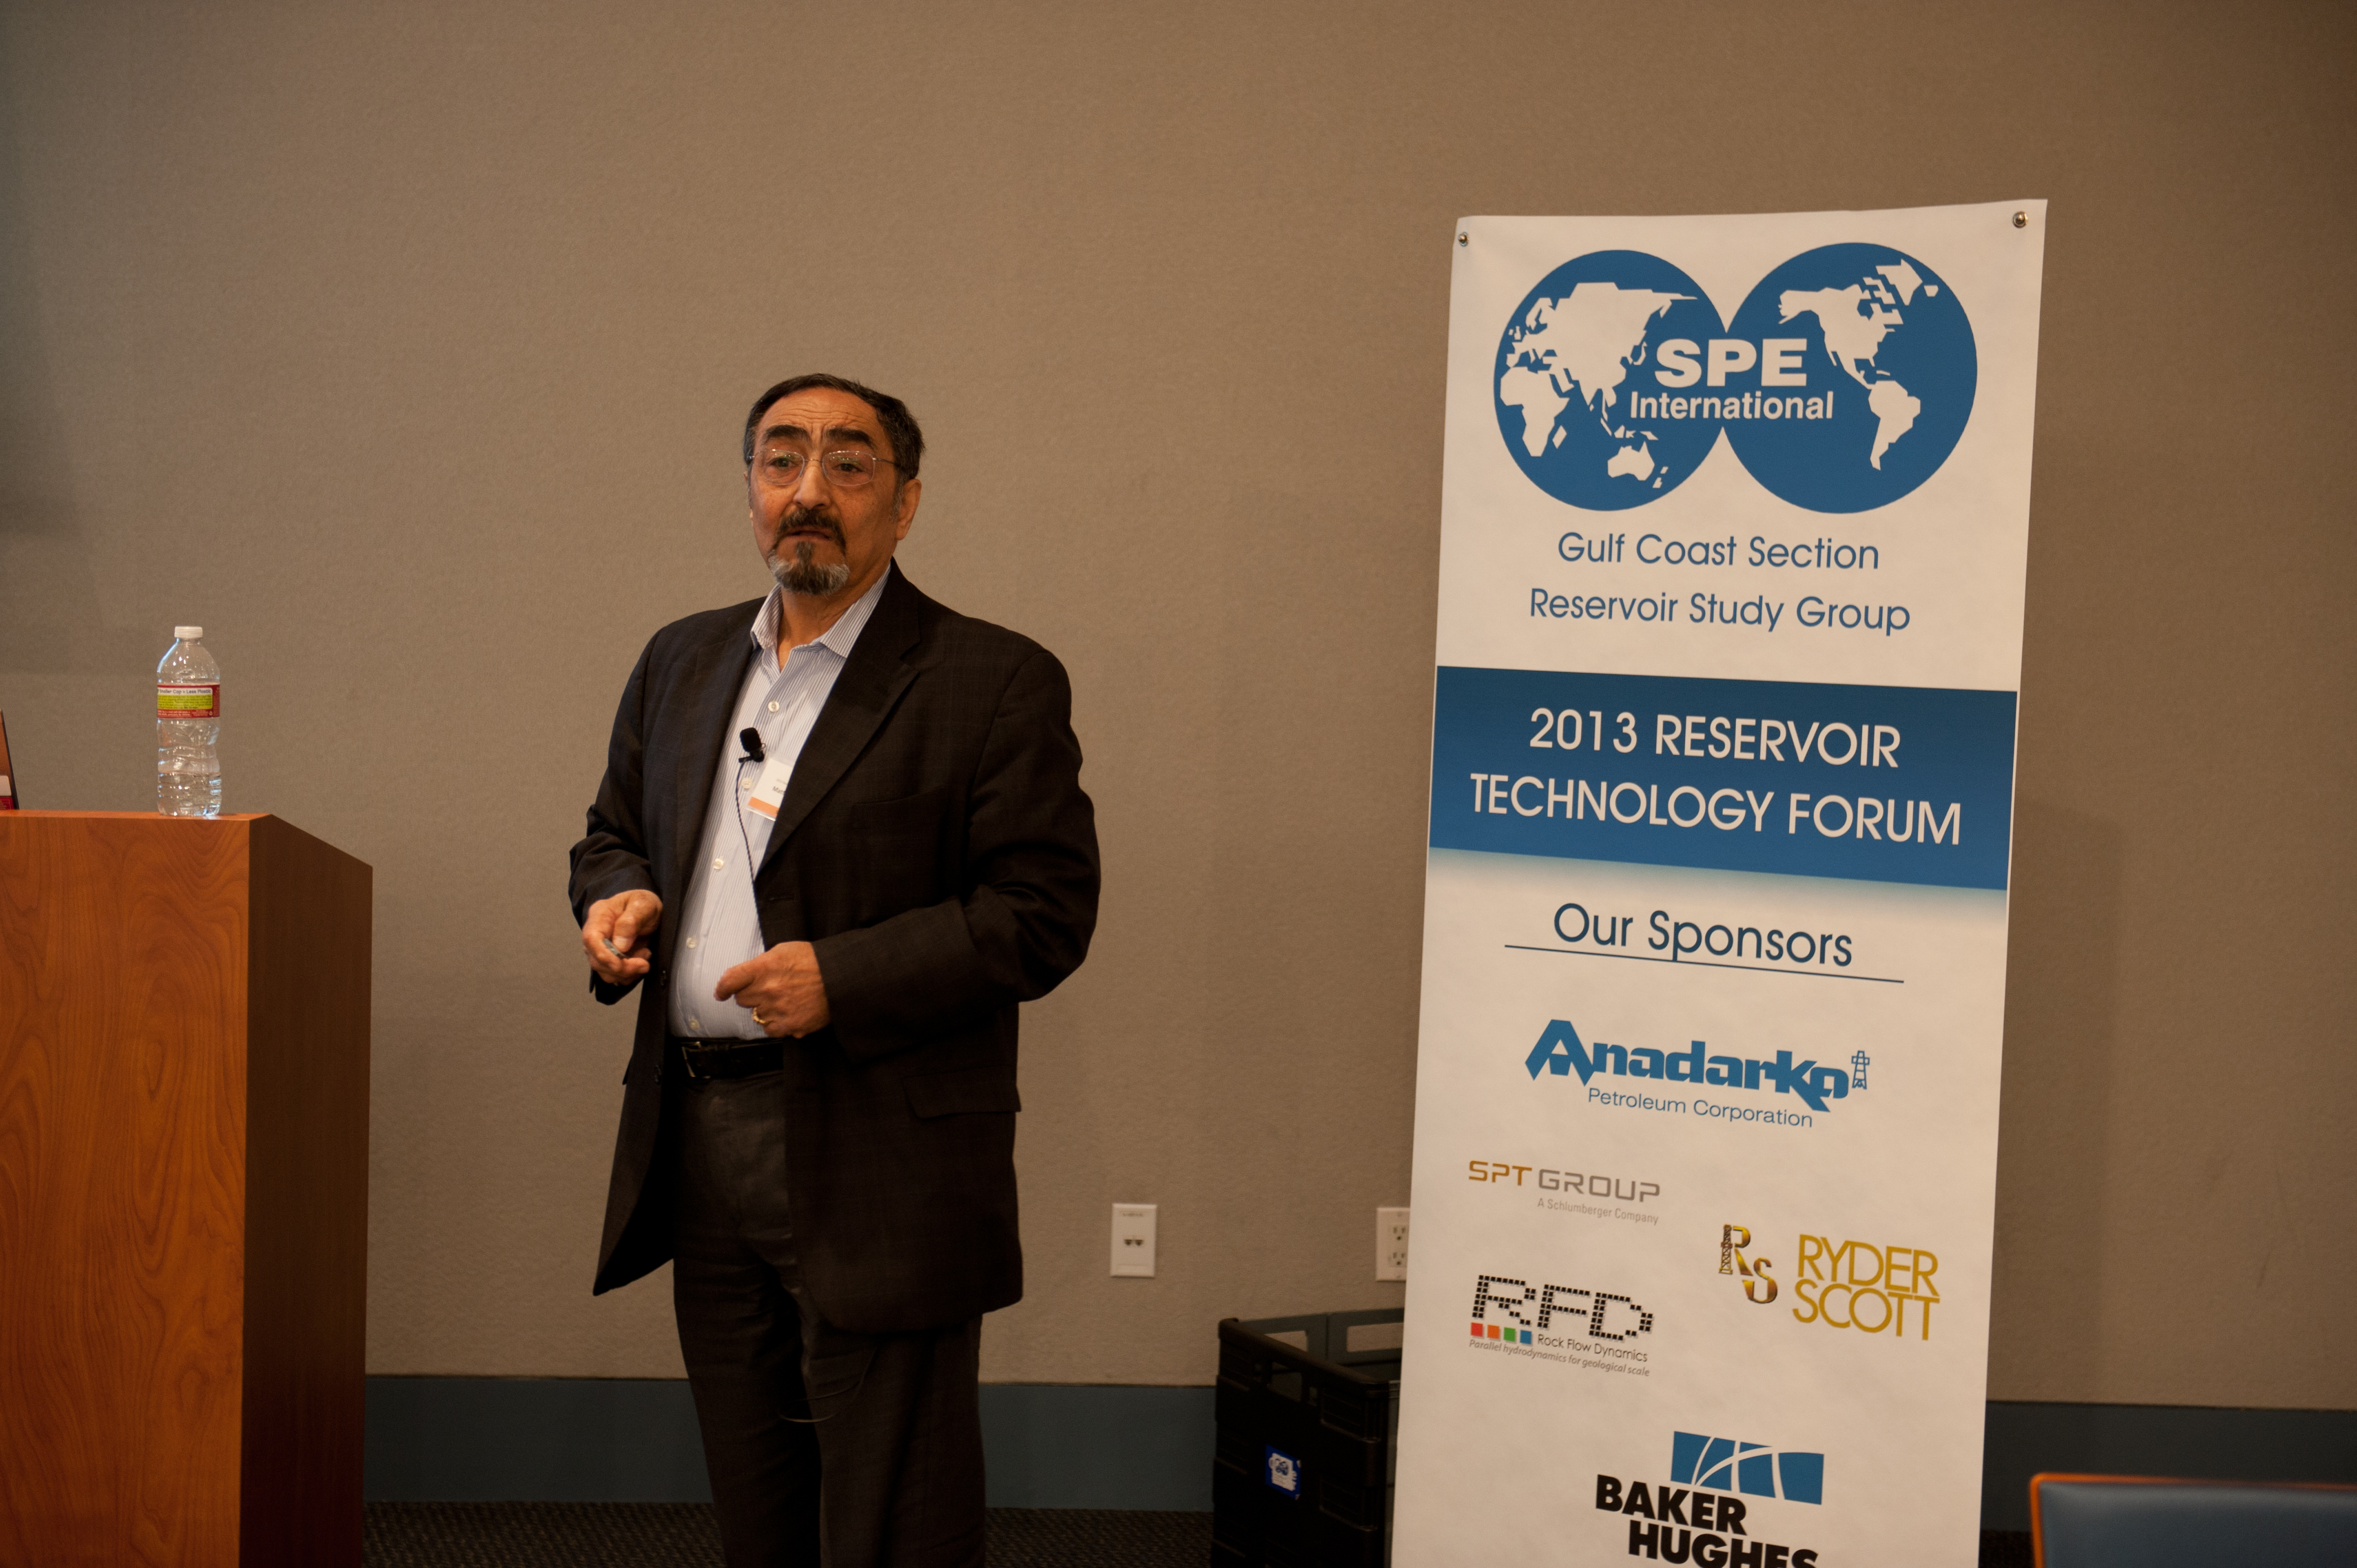 2013 Reservoir Technology Forum